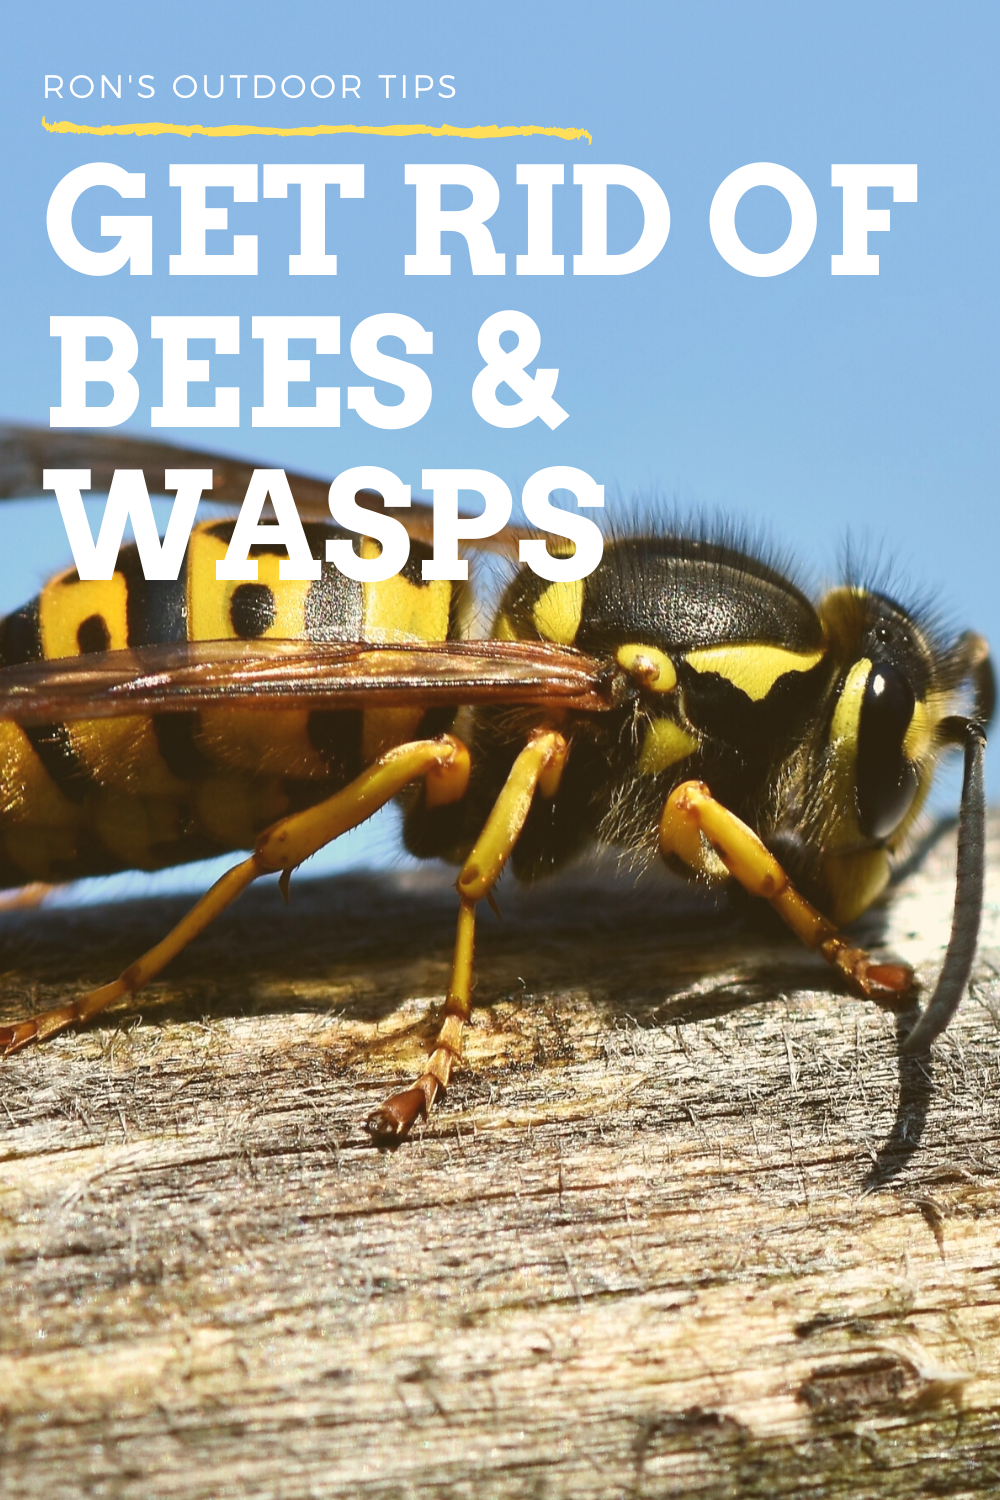 Get Rid Of Bees Wasps In 2020 Getting Rid Of Bees Bees And Wasps Get Rid Of Wasps